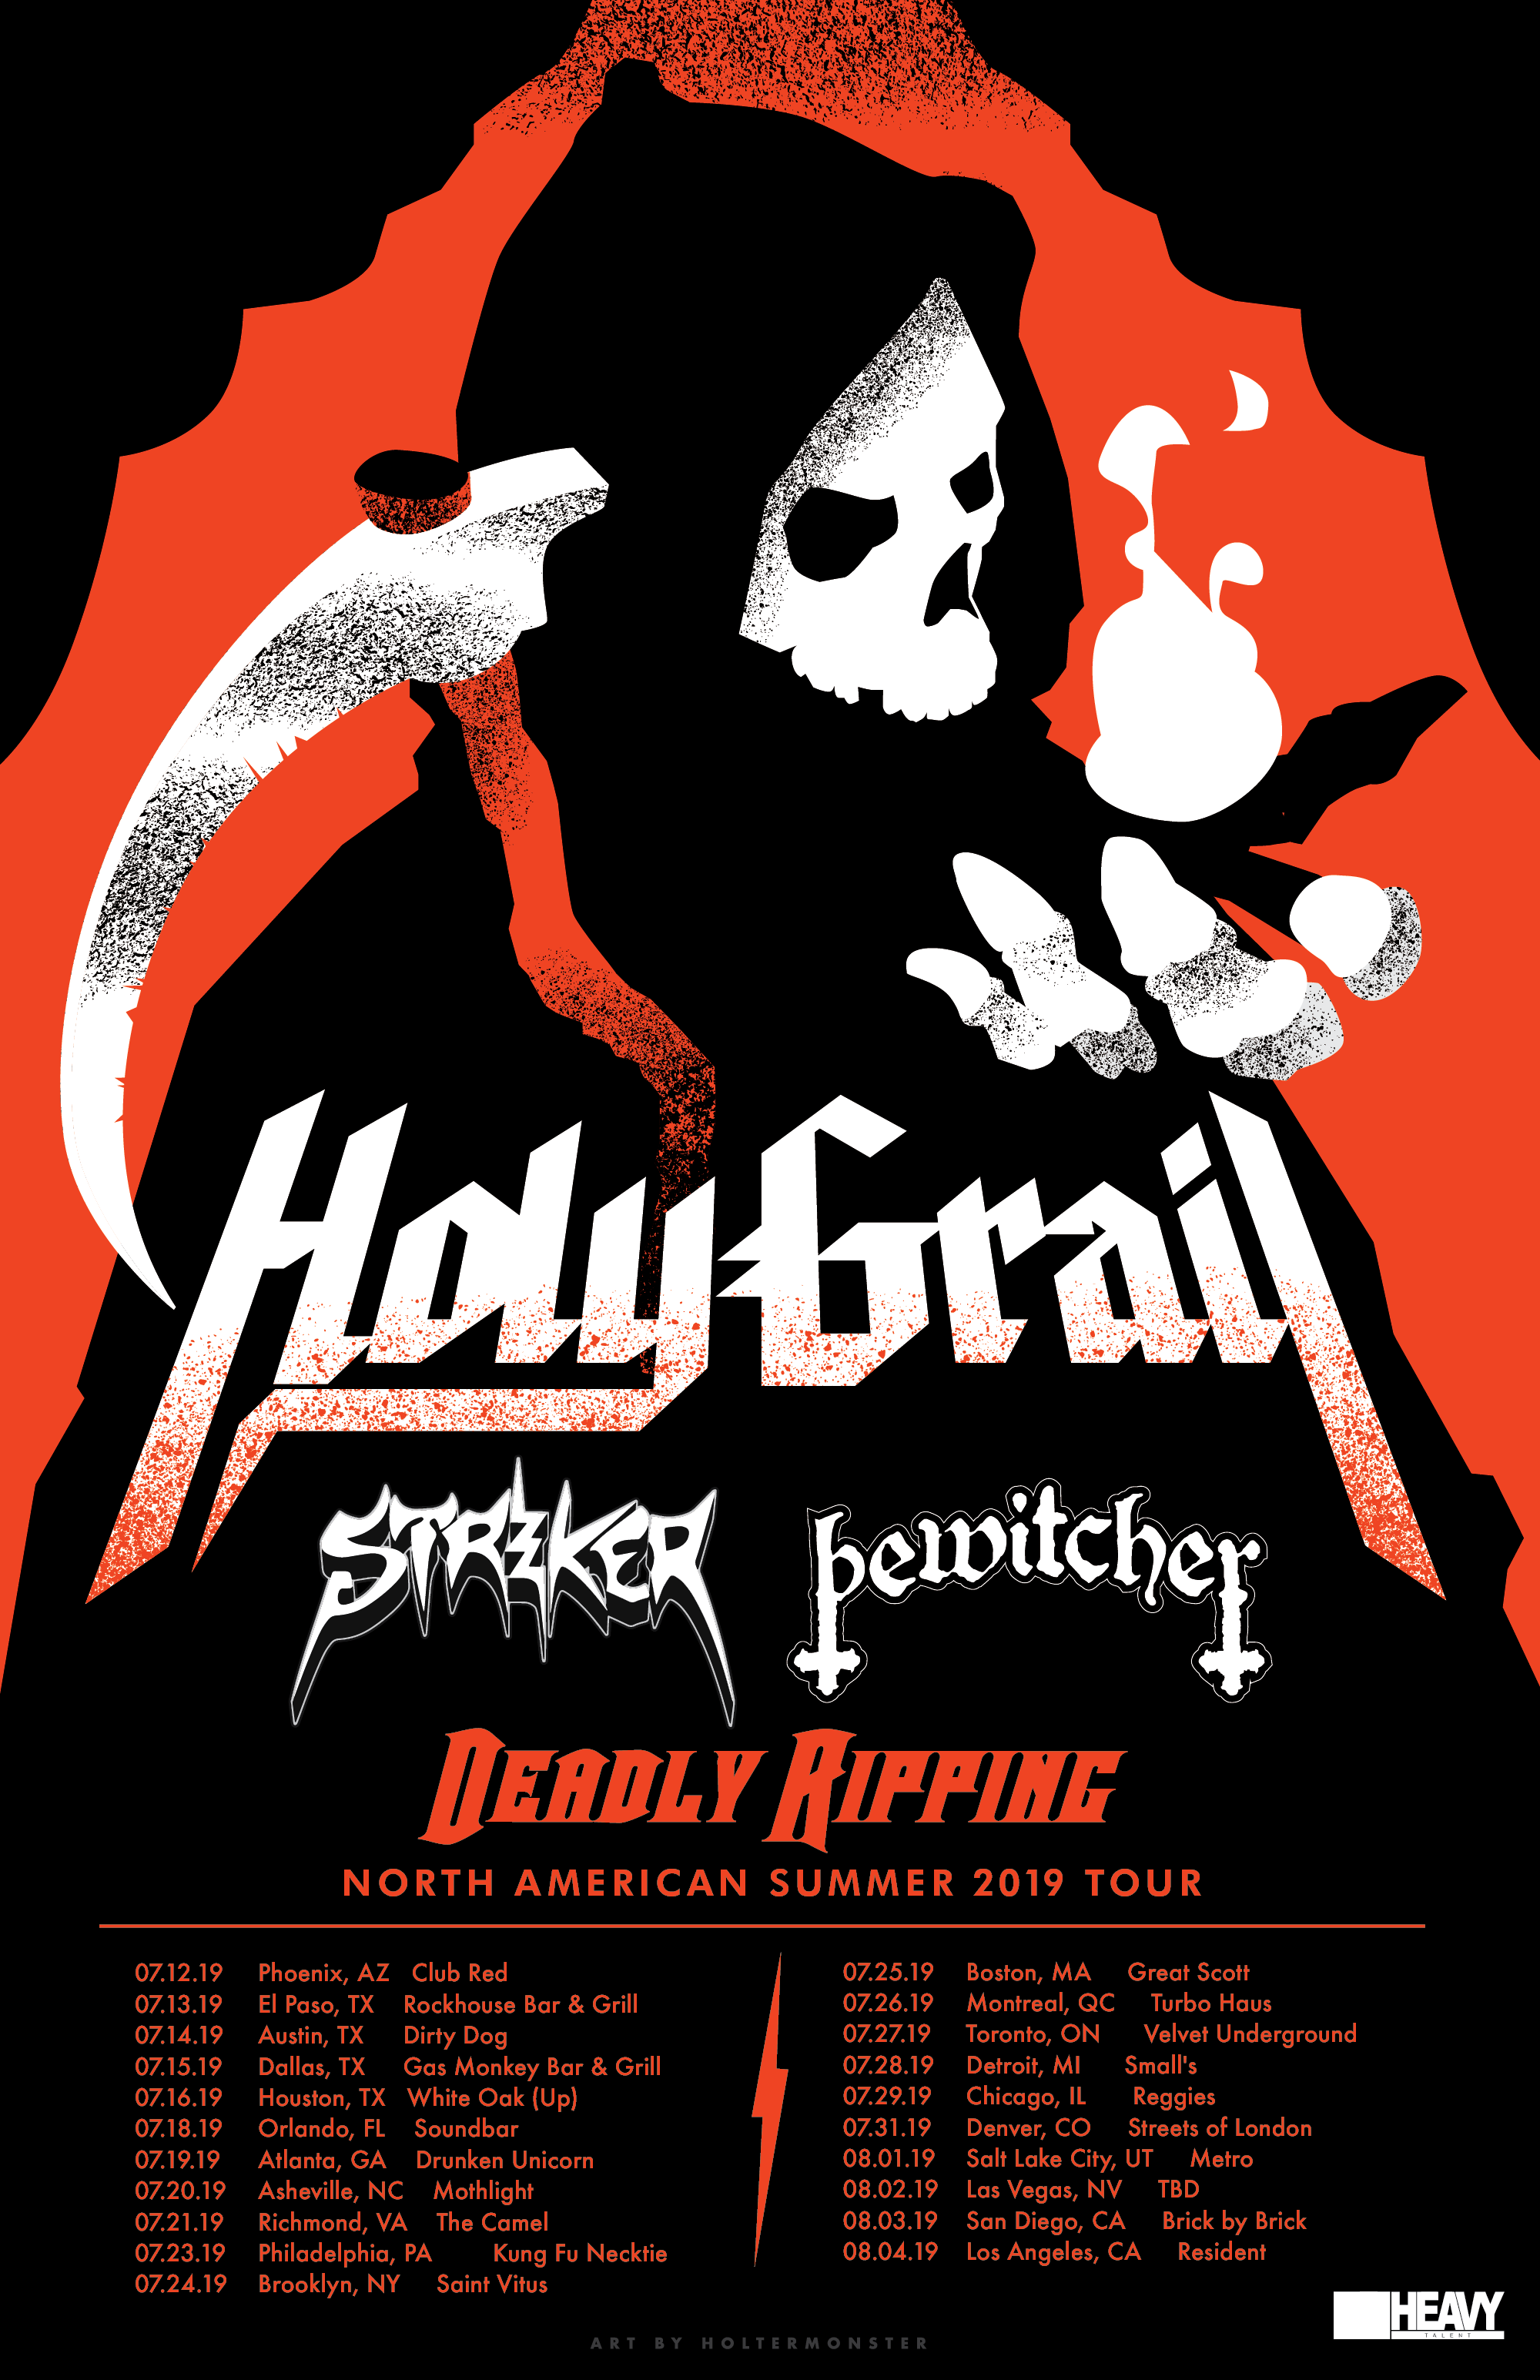 HolyGrail_2019_DeadlyRipping_tour-poster_web.png